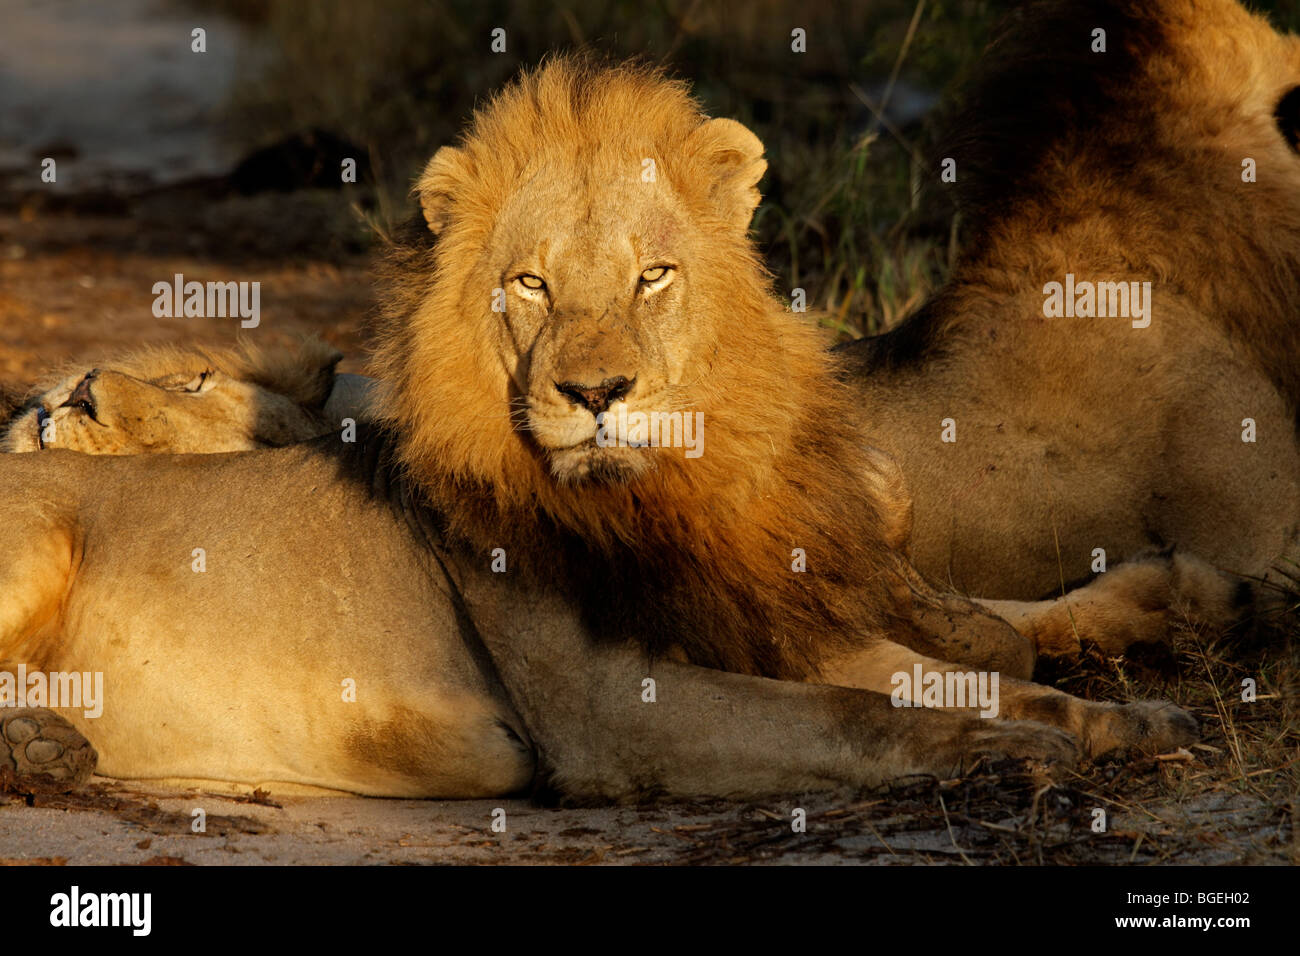 Portrait of a big male African lion (Panthera leo), Kruger National Park, South Africa - Stock Image